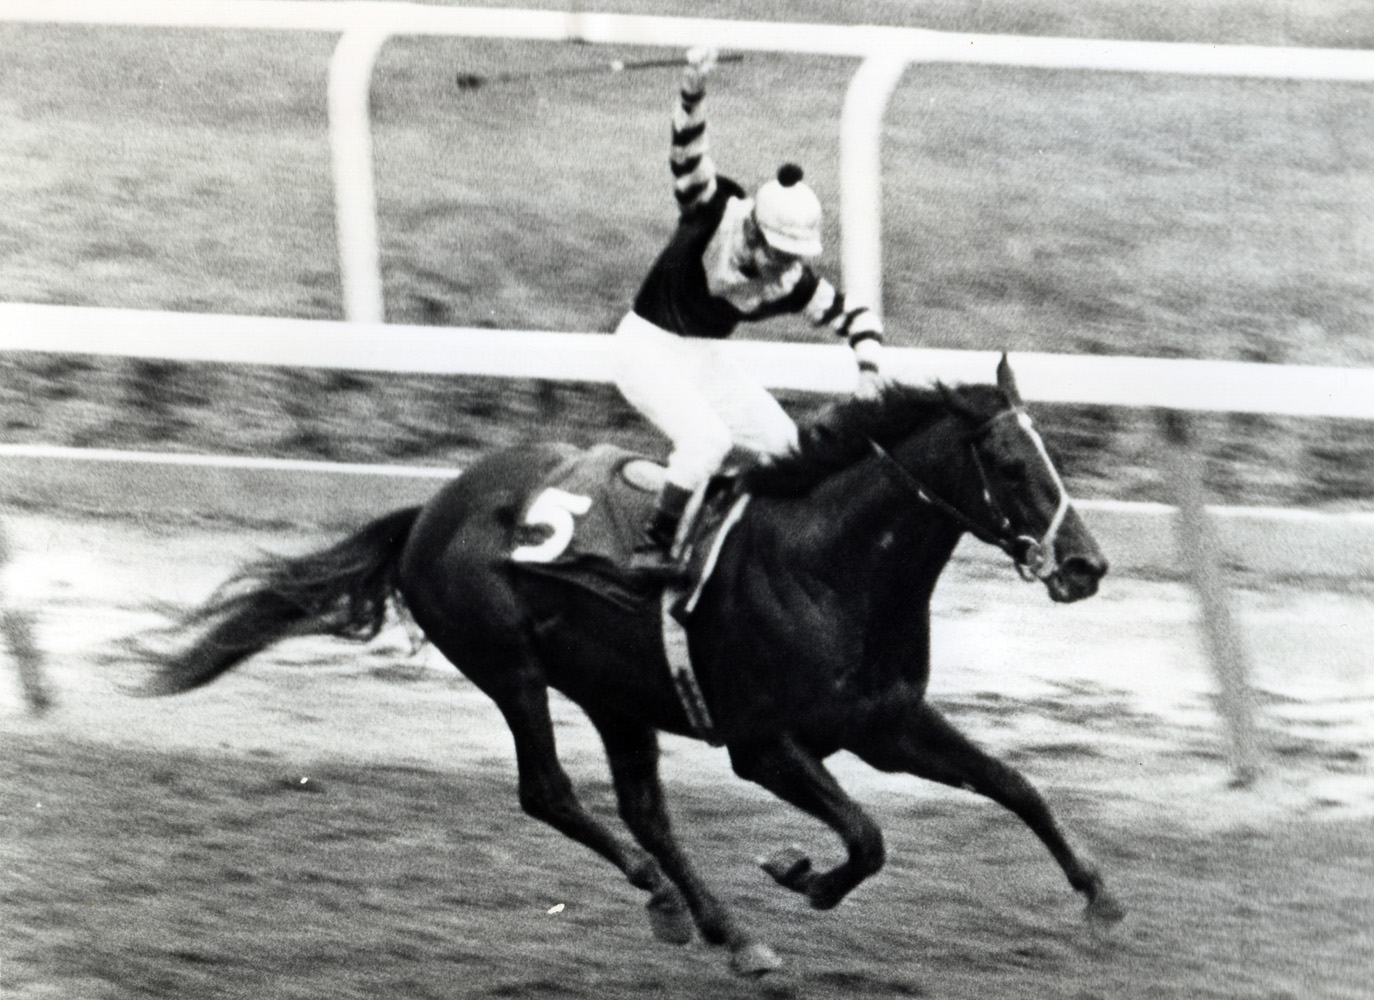 Seattle Slew (Jean Cruguet up) winning the 1977 Belmont Stakes and becoming America's 10th Triple Crown winner (NYRA/Museum Collection)